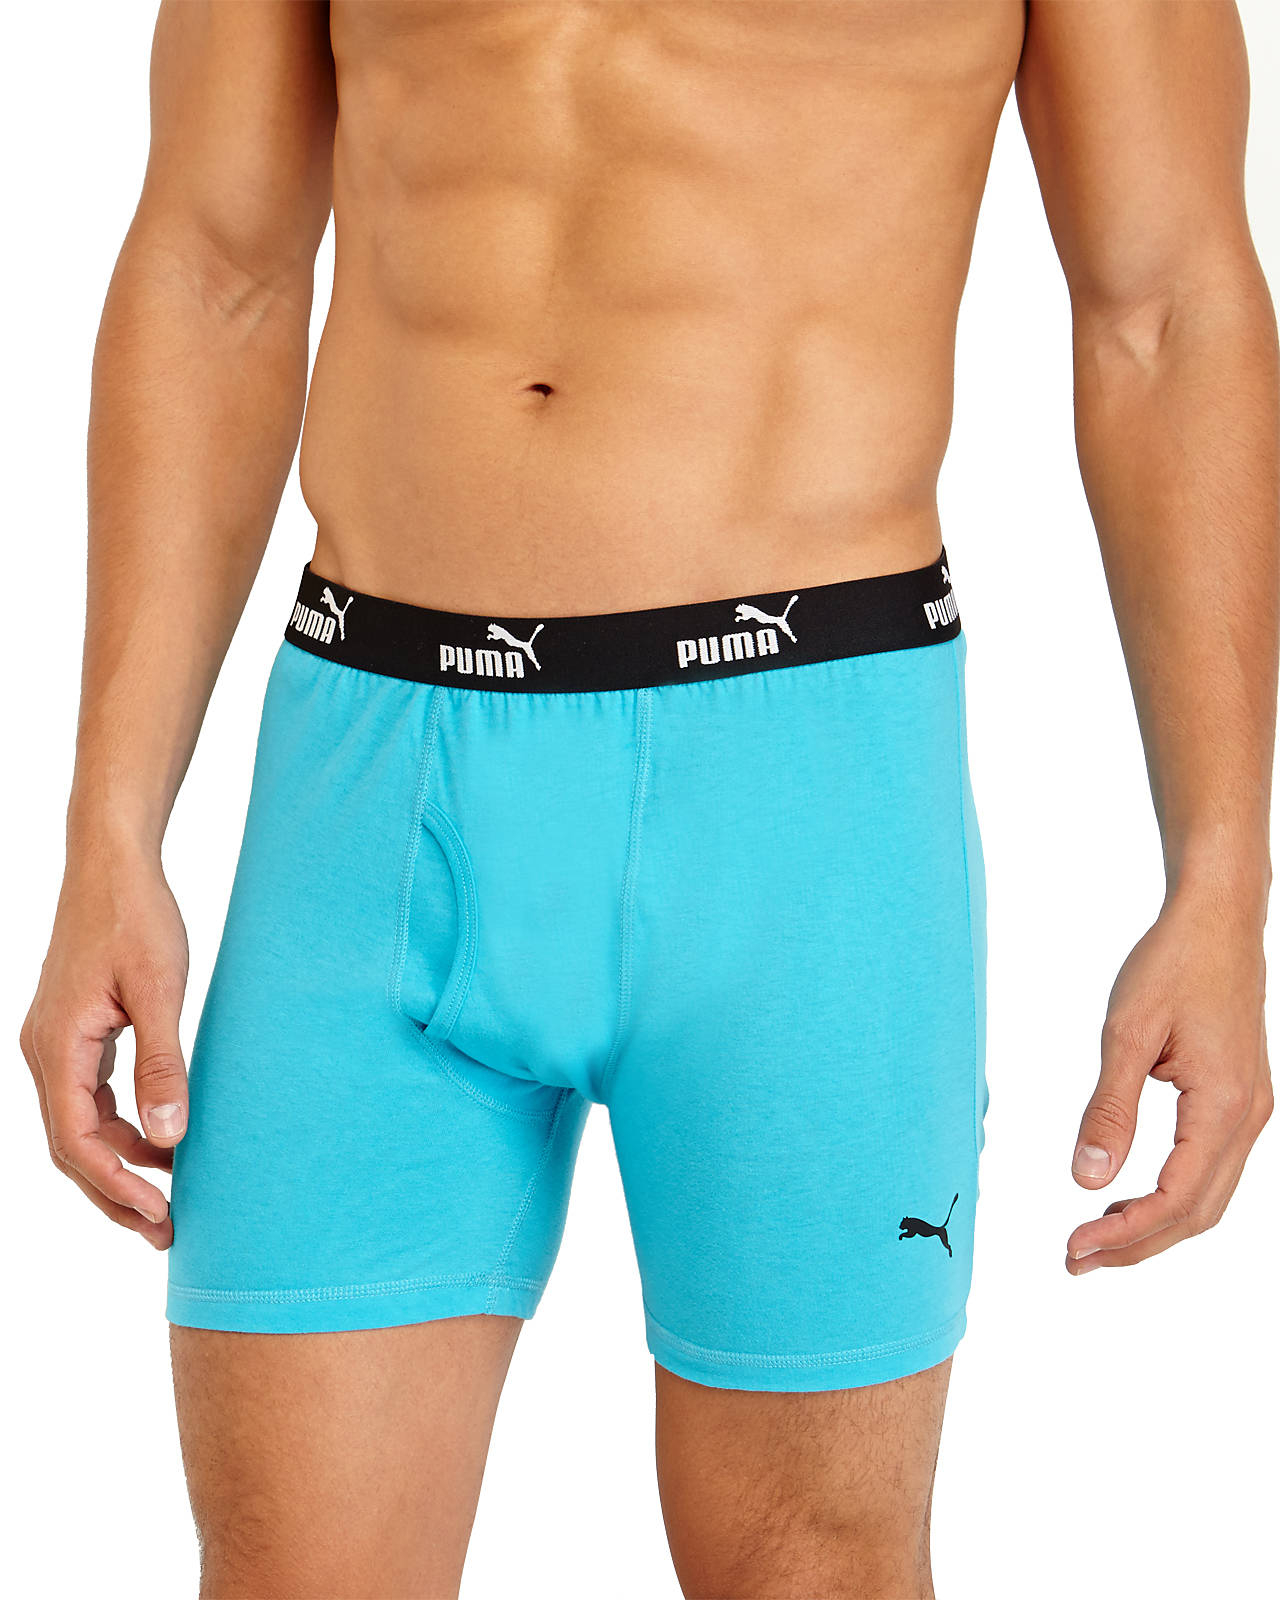 Lyst Puma 3 Pack Multicolor Boxer Briefs In Blue For Men Gallery